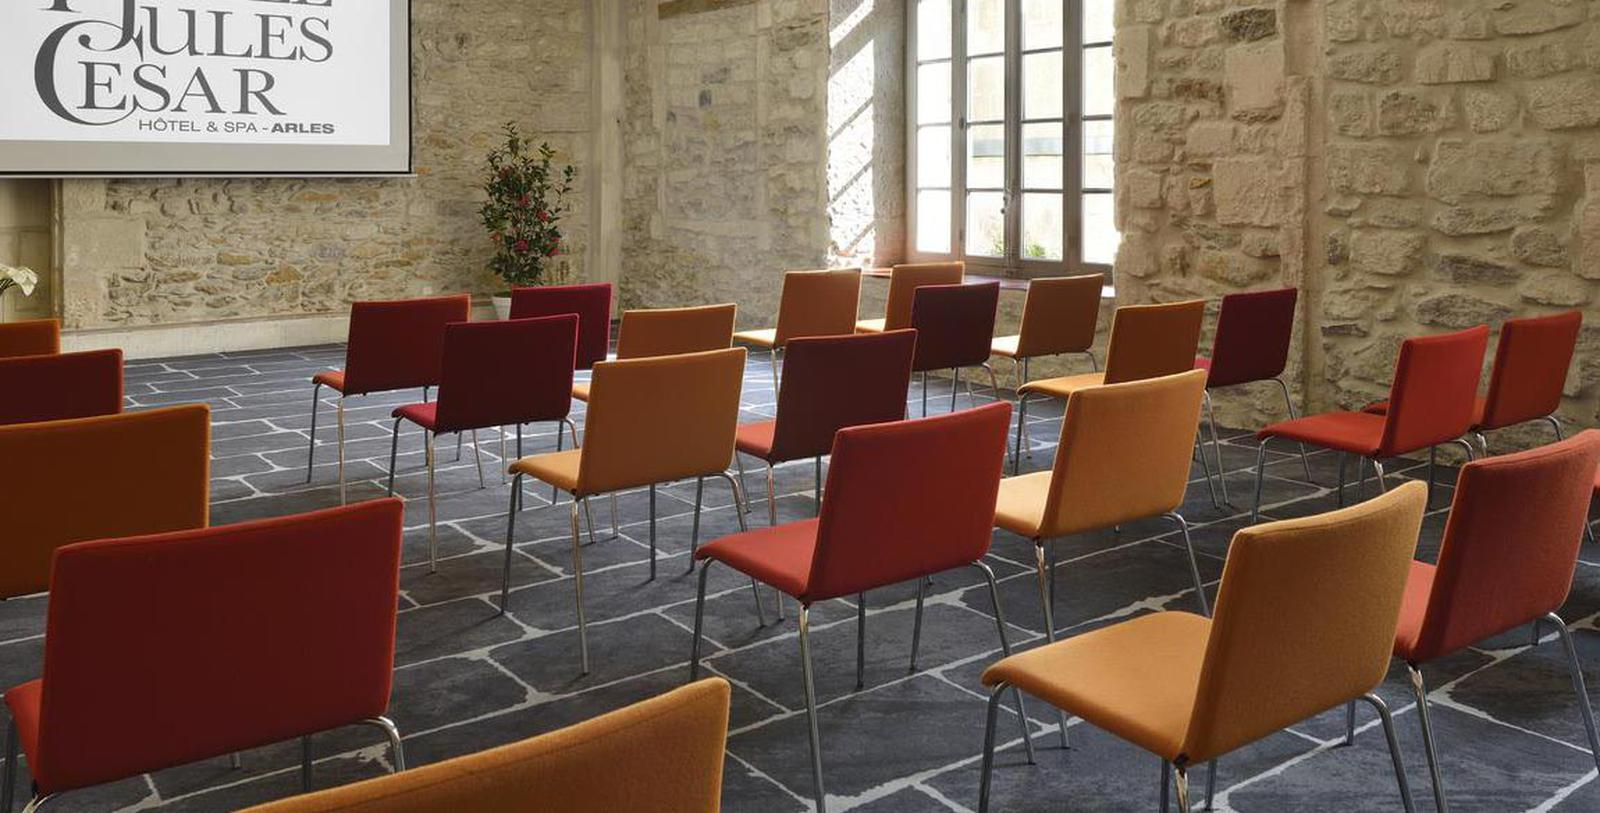 Image of Meeting Room Hôtel & Spa Jules César Arles – MGallery by Sofitel, 1661, Member of Historic Hotels Worldwide, in Arles, France, Experience